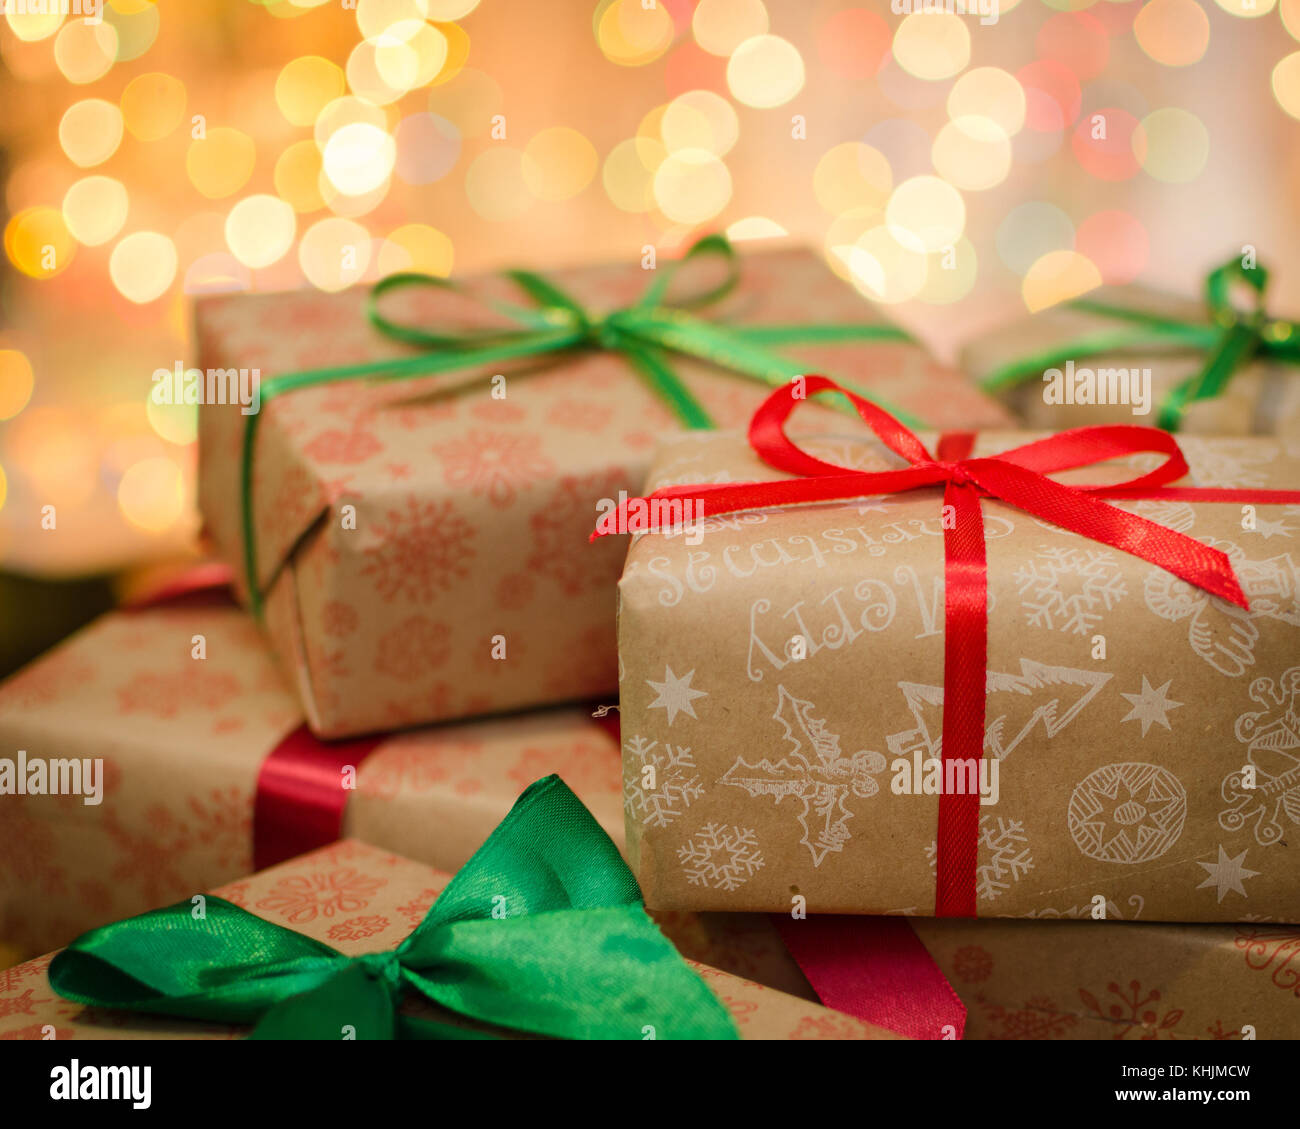 Christmas Gift Boxes Wrapped In Themed Craft Paper And Satin